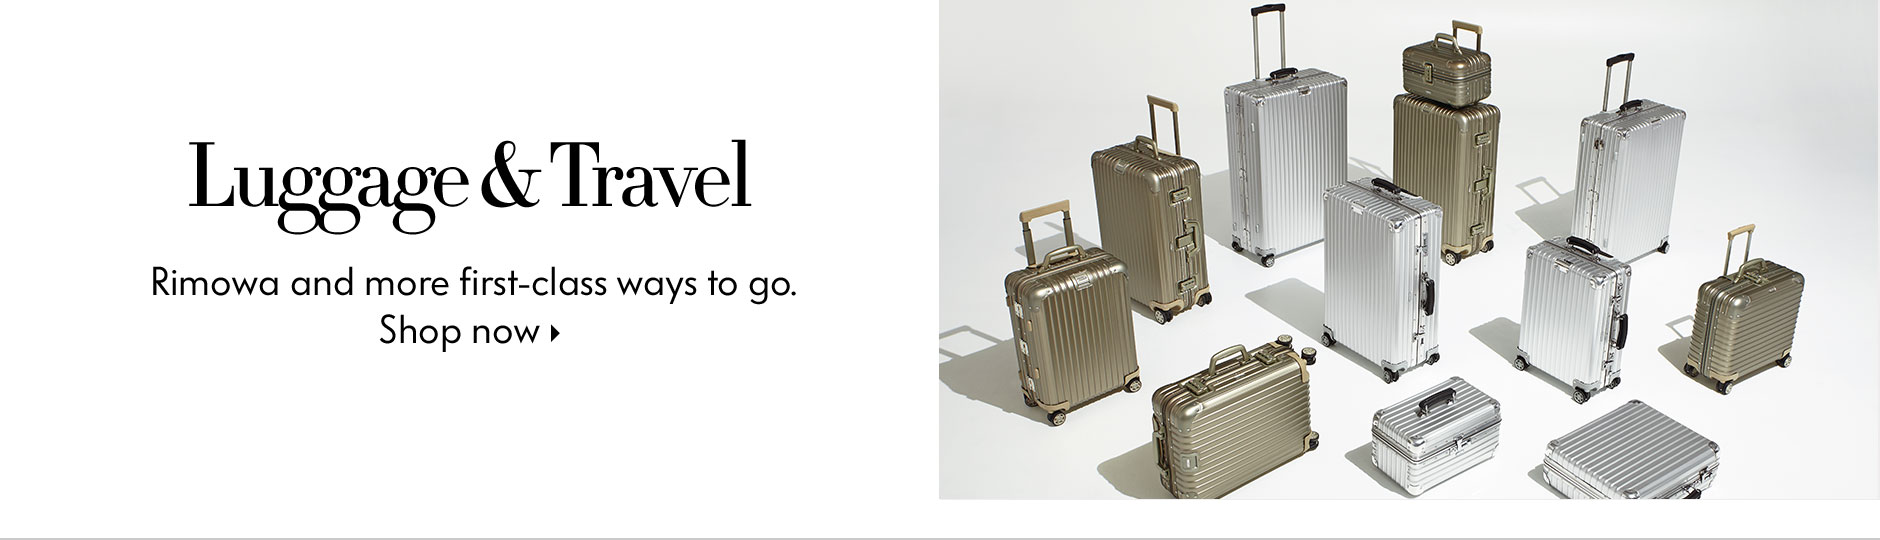 Luggage & Travel - Rimowa and more first-class ways to go.